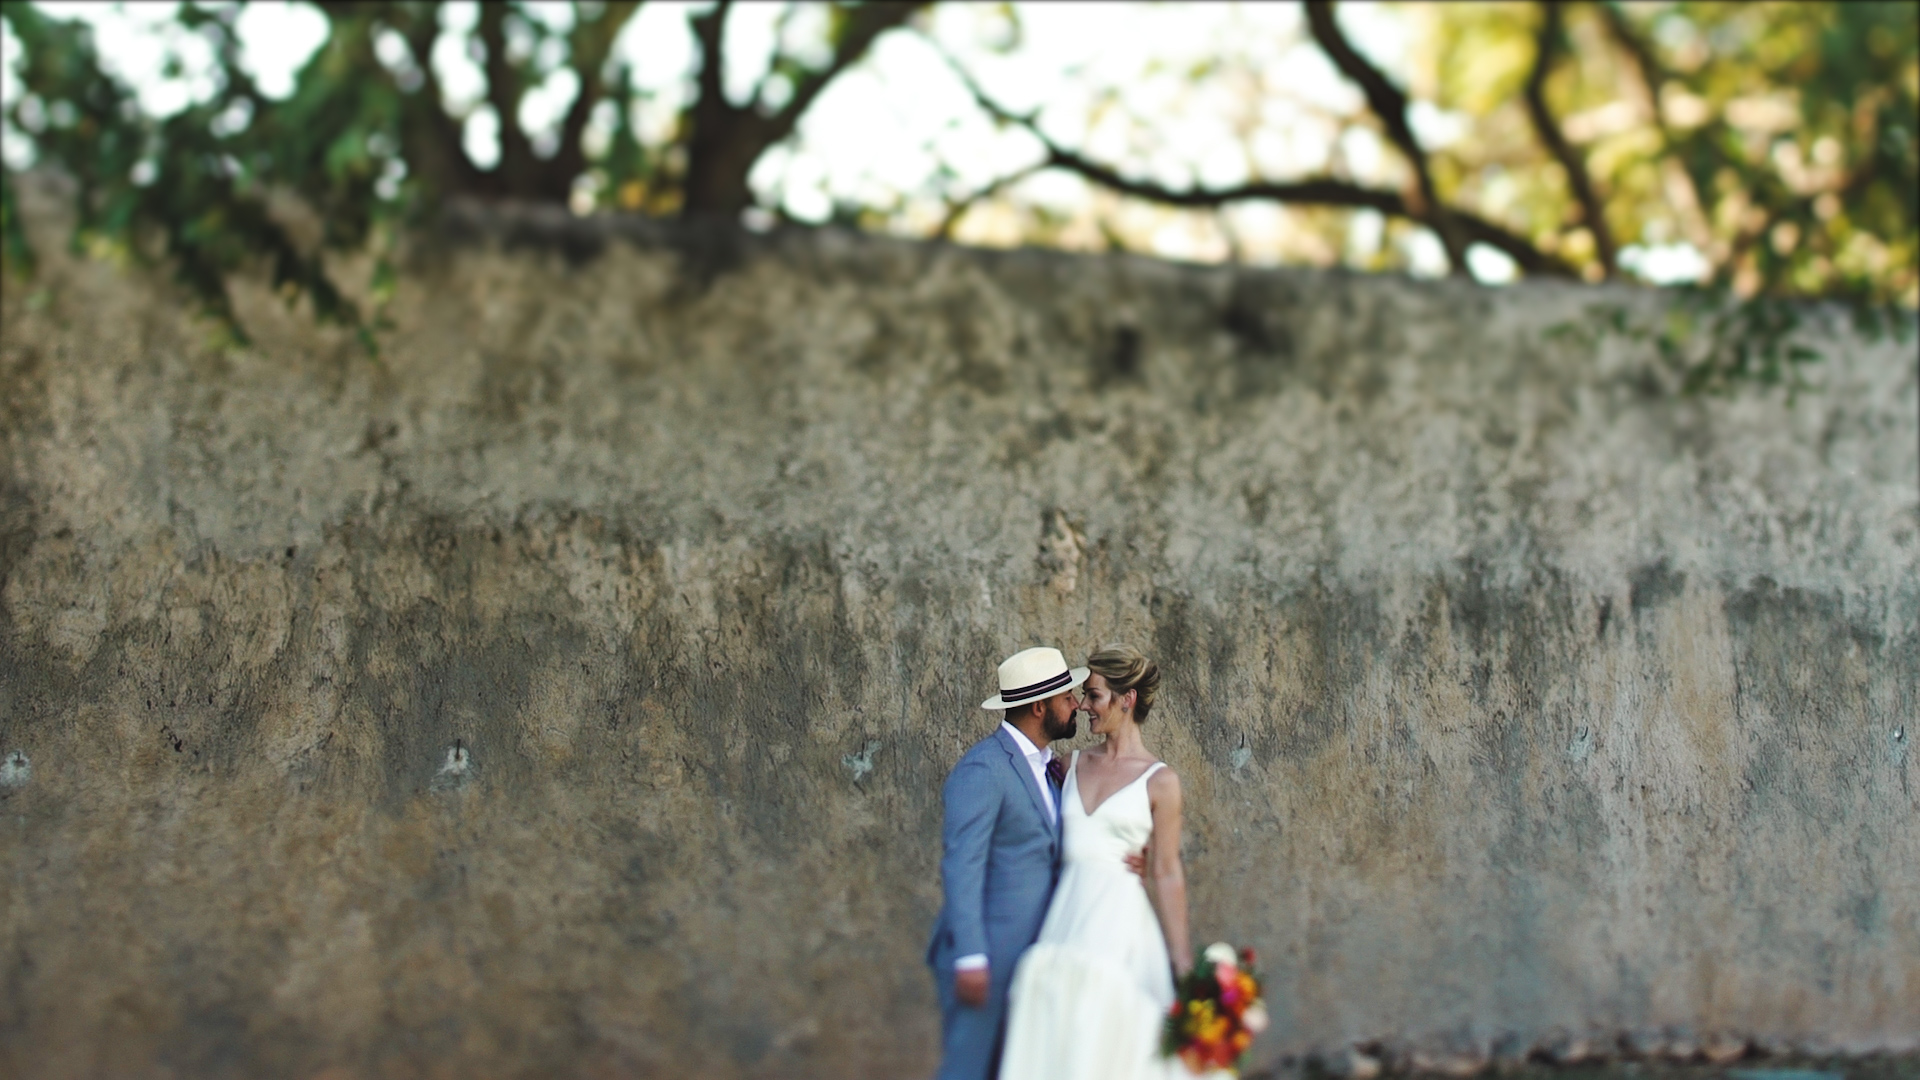 Magical Destination Wedding Video at Hacienda Sac Chic Merida Mexico KindleWood Films